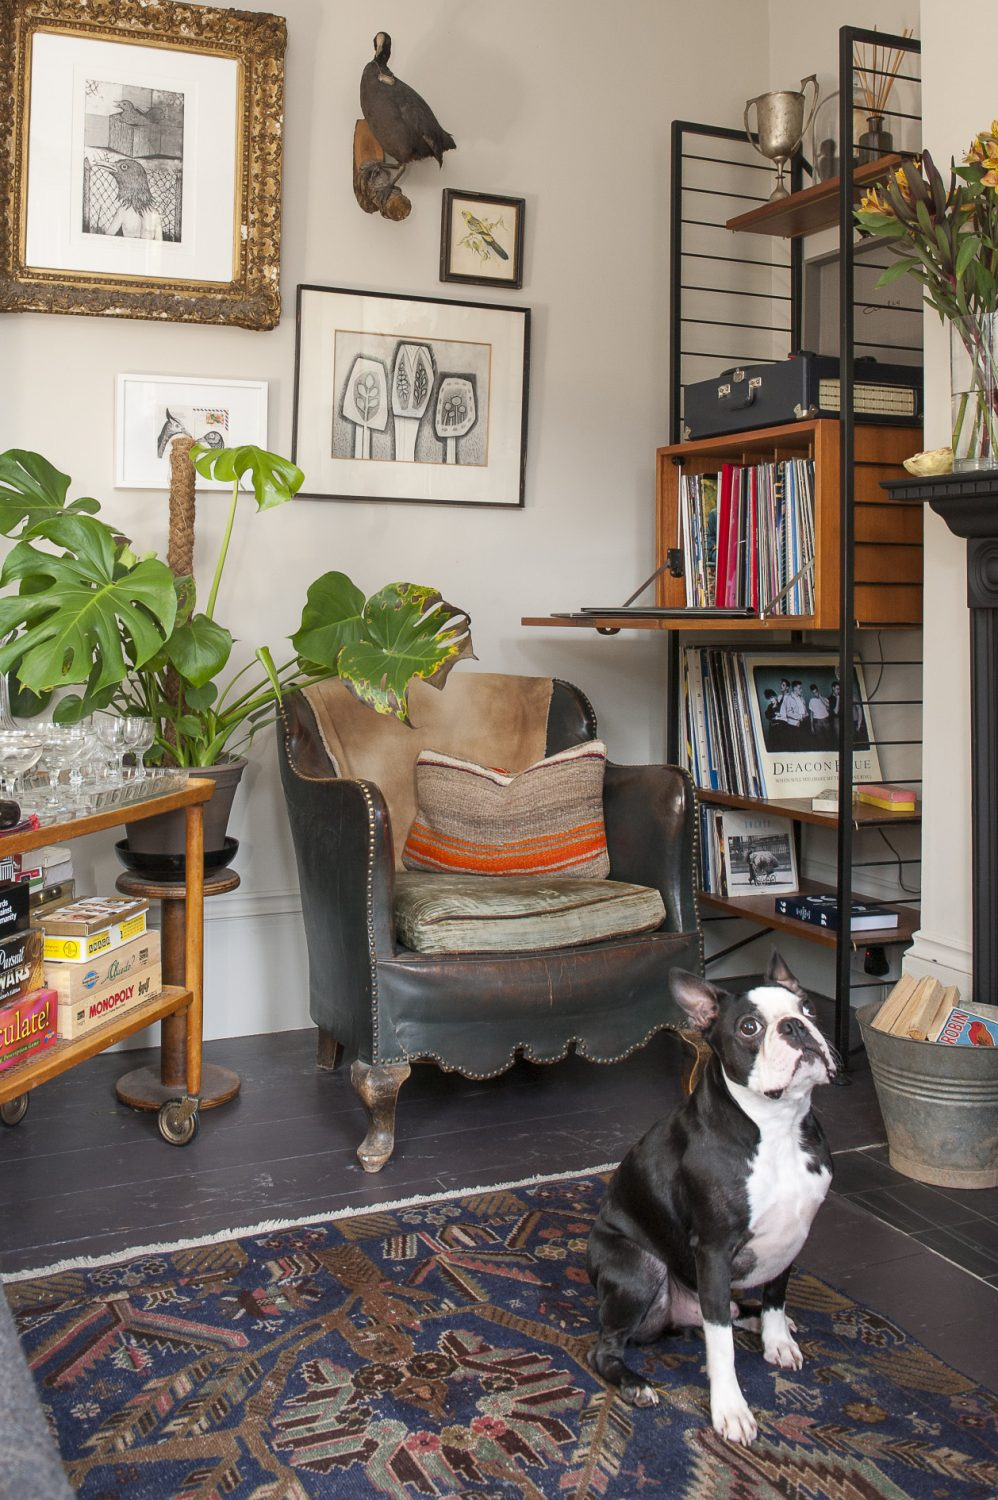 Cooper stands guard in the living room, with floorboards painted in Chocolate by Little Greene. The leather chair is one of a pair from France, found by a lady in St Leonards who has a shop called Sideshow Interiors. Artworks by Russell Loughlan have been carefully placed on the wall